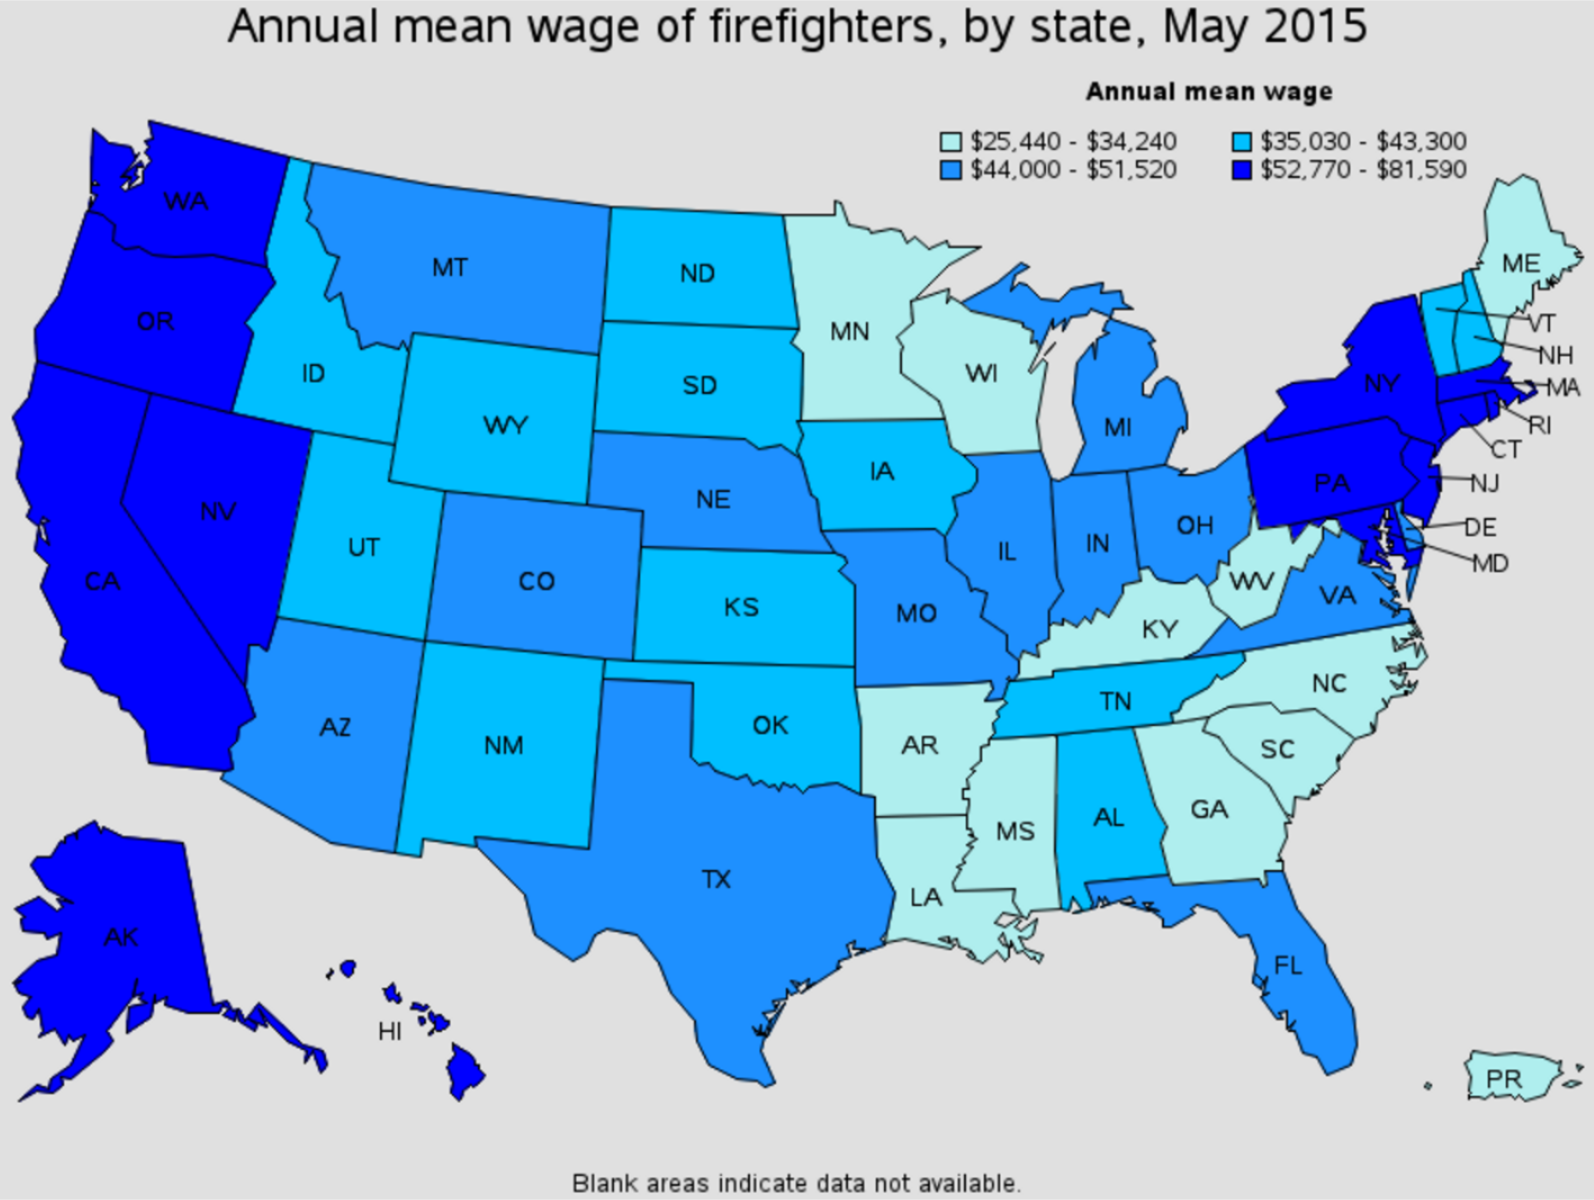 firefighter average salary by state Whitmore Lake Michigan